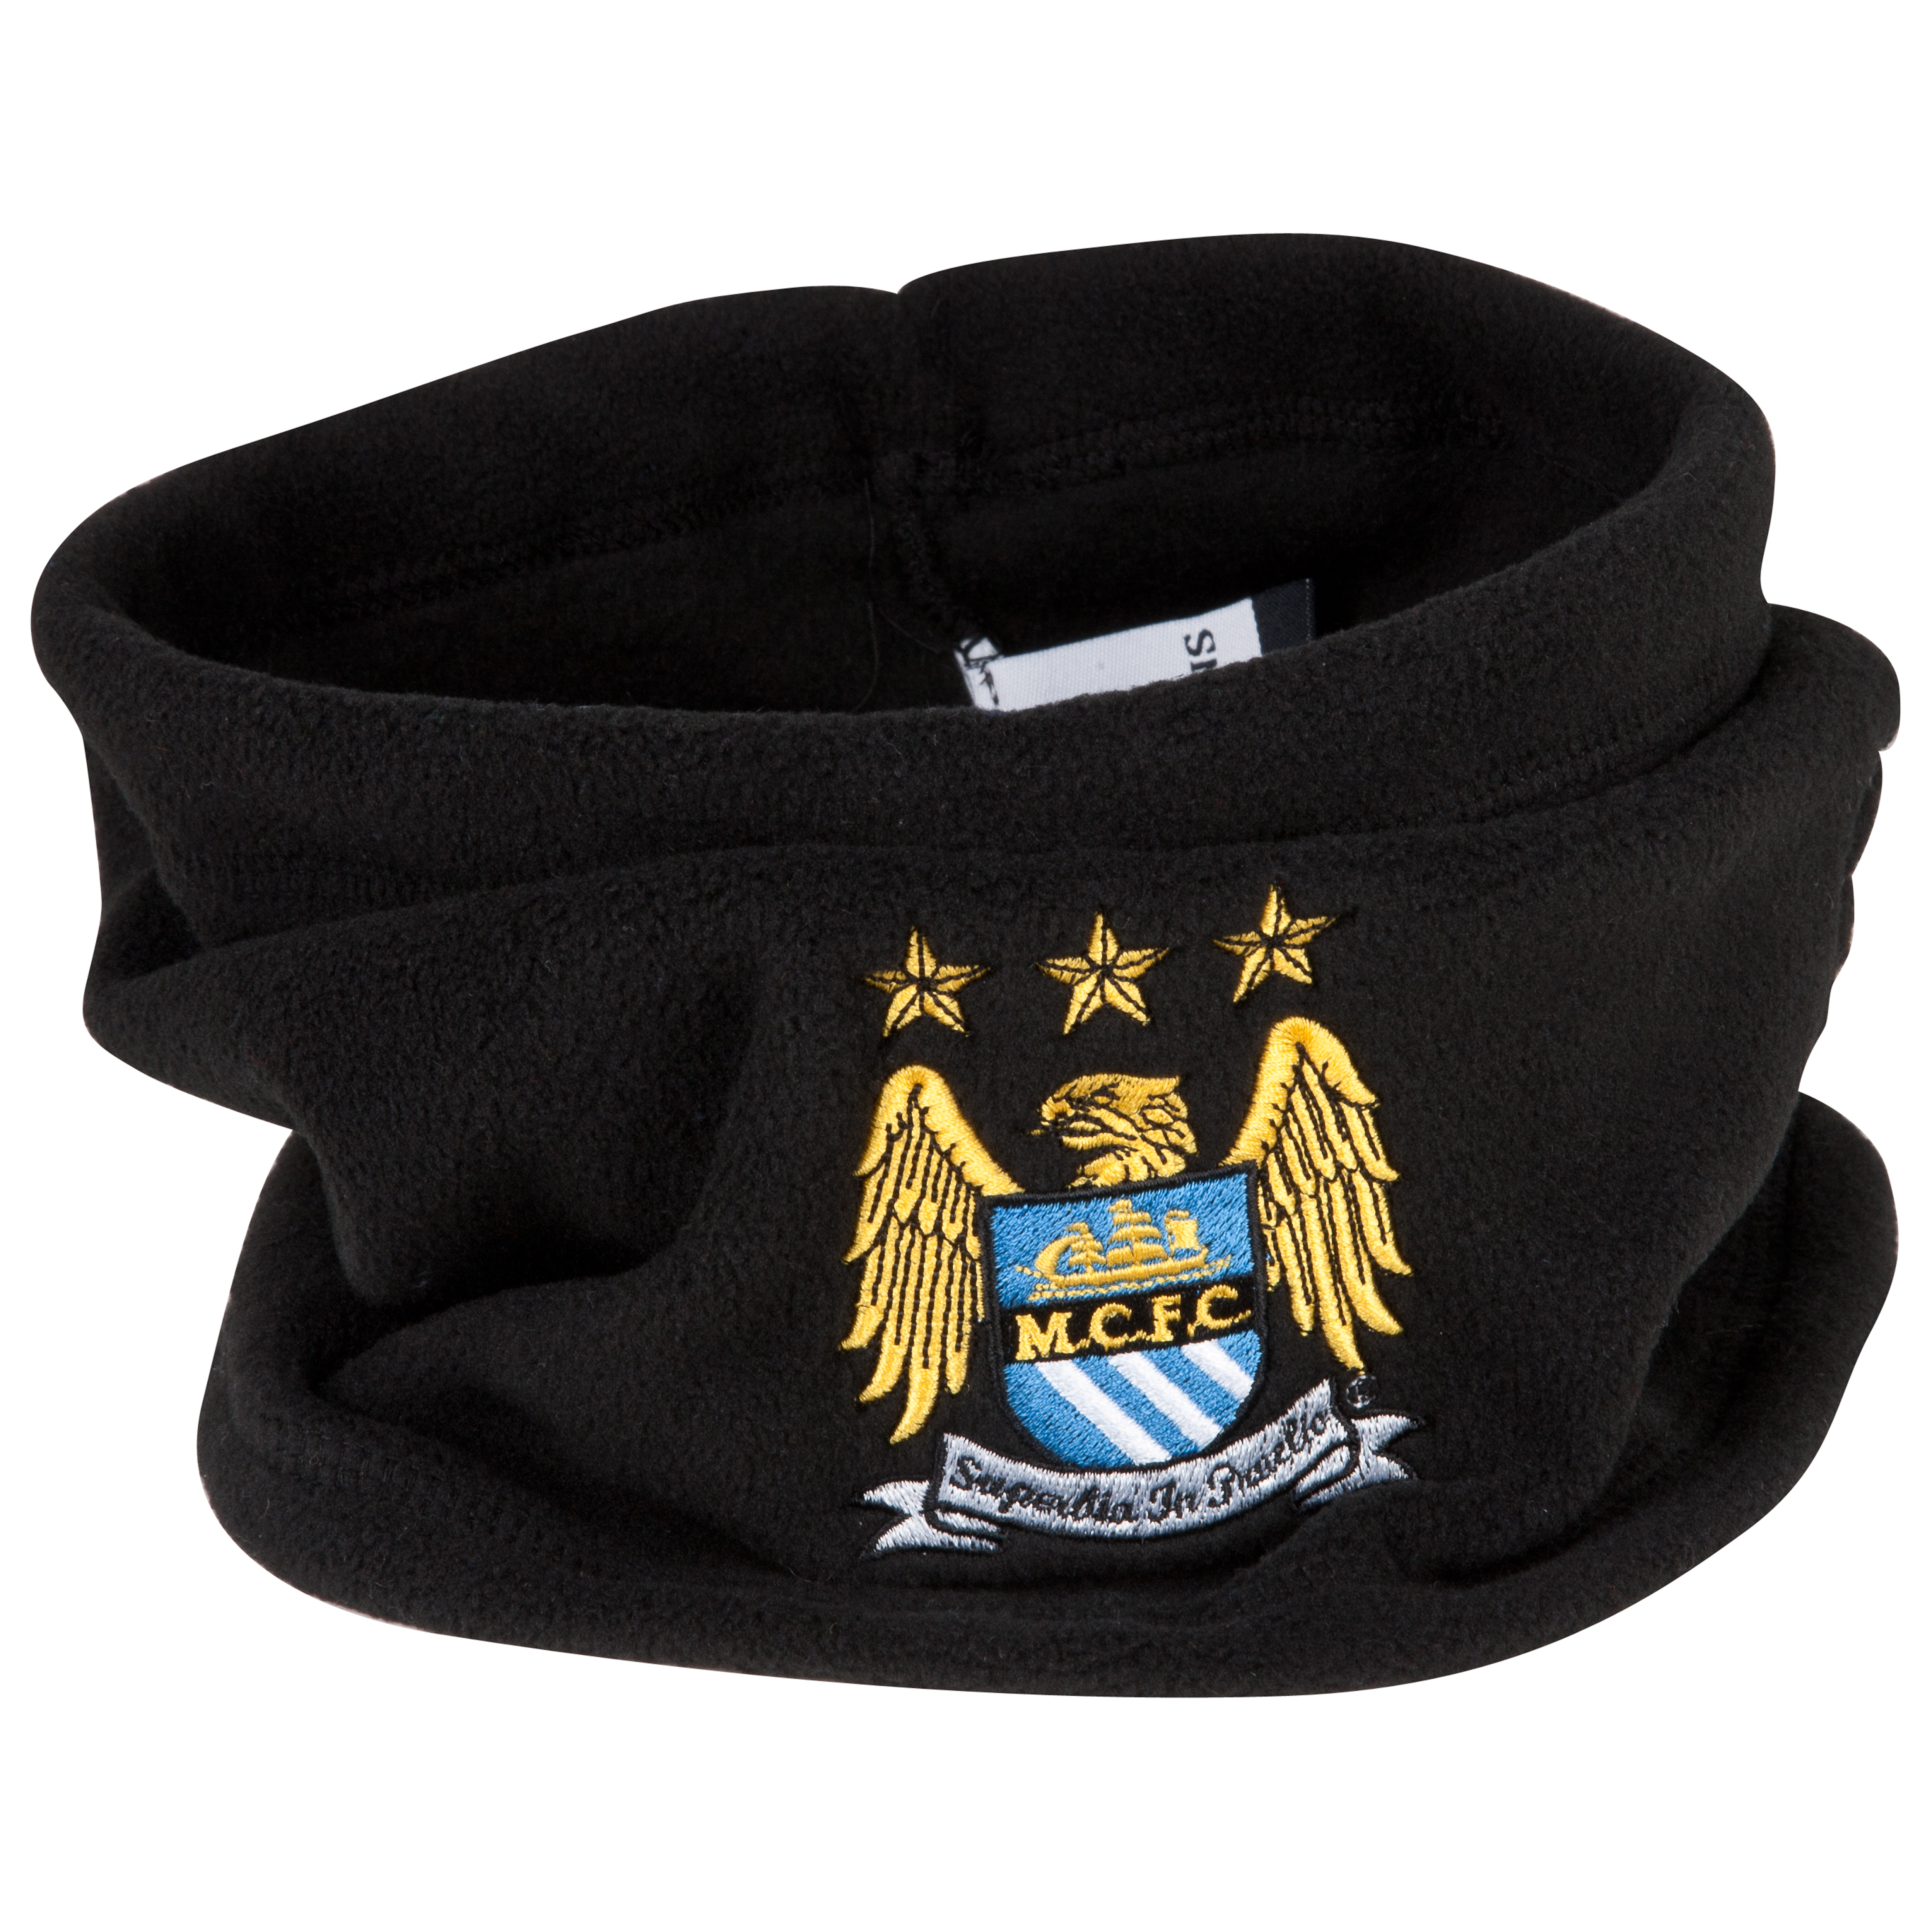 Manchester City UEFA Champions League Embroidered Fleece Hat/Neck Warmer - Black